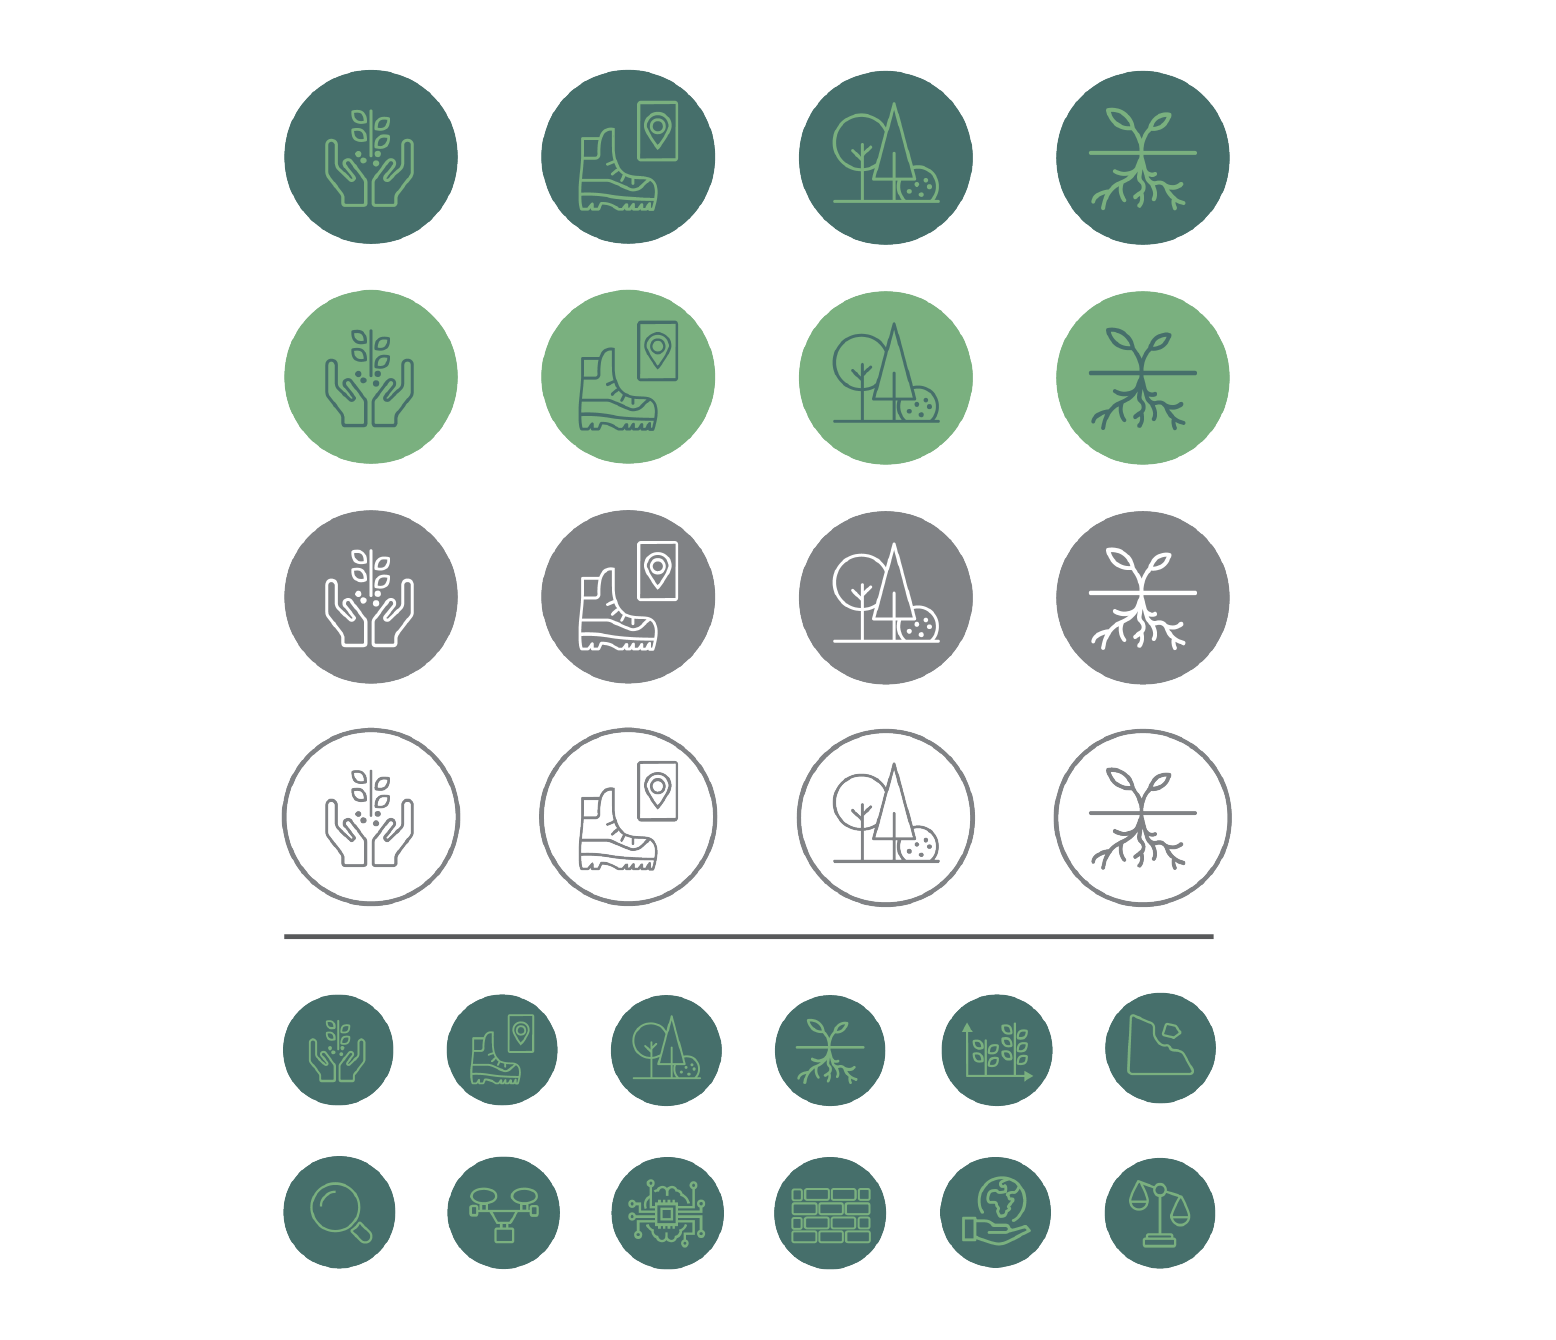 brand design Iconography in greens and grass